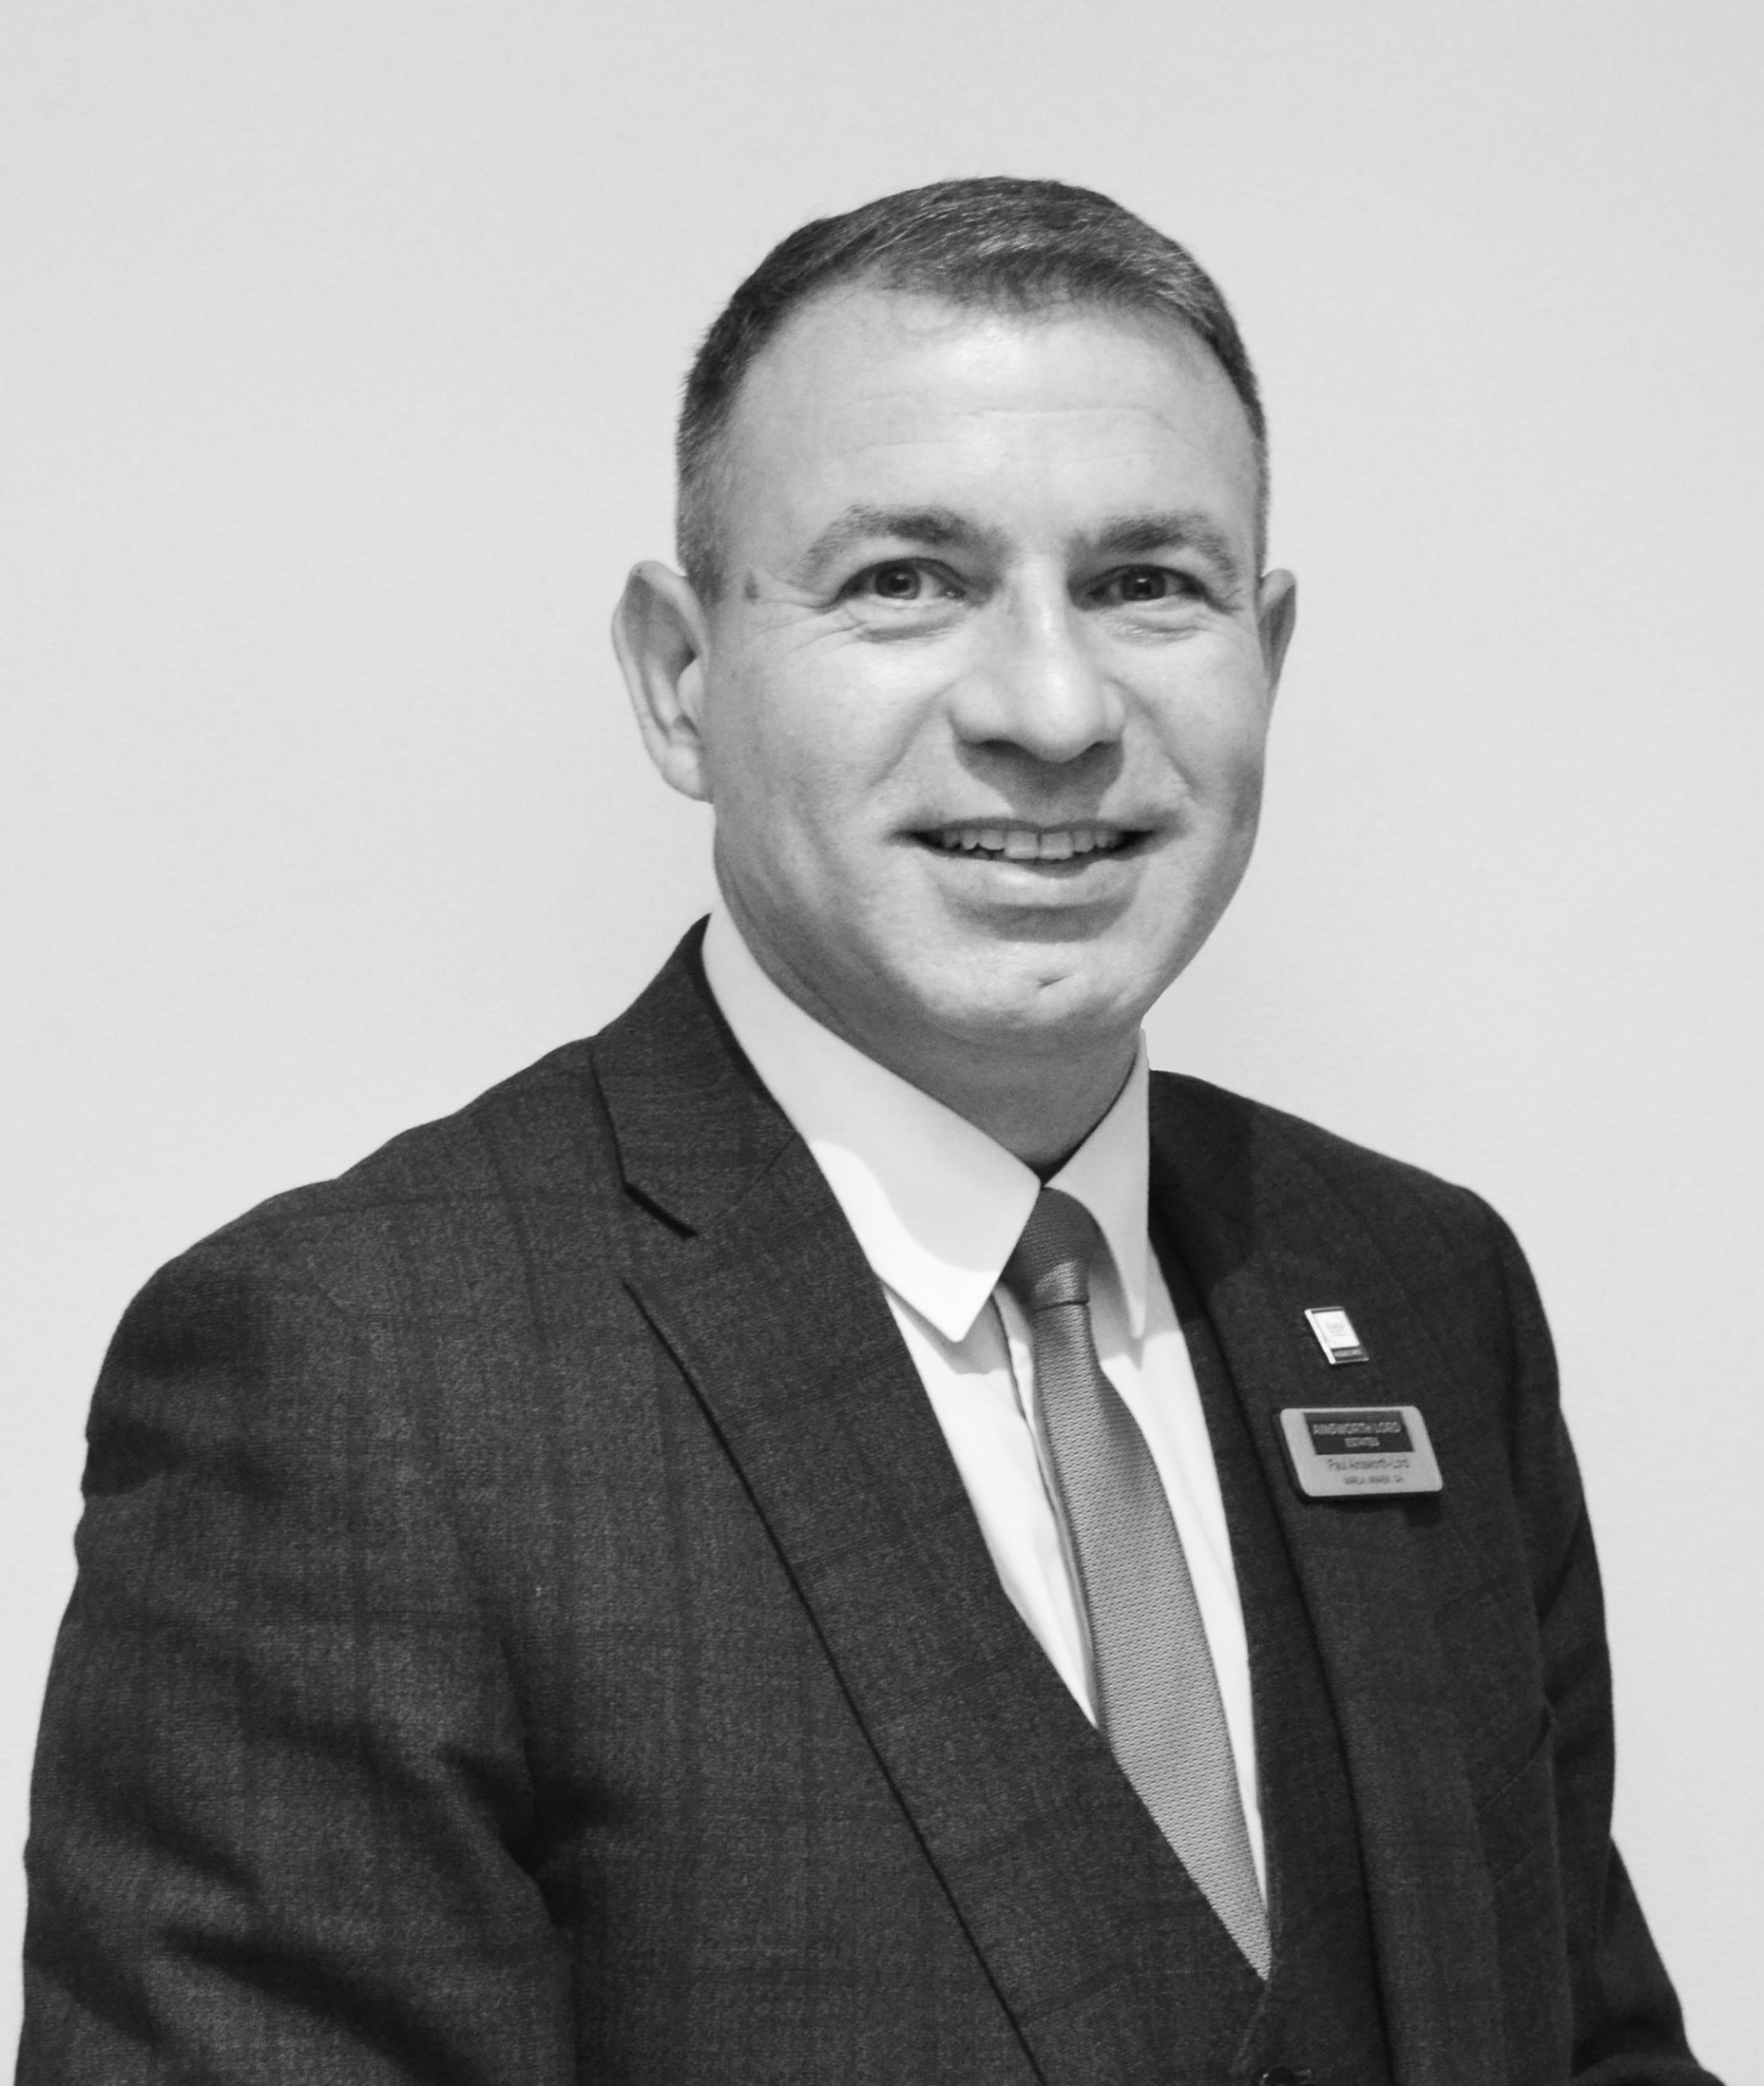 Paul Ainsworth-Lord, Lettings Director